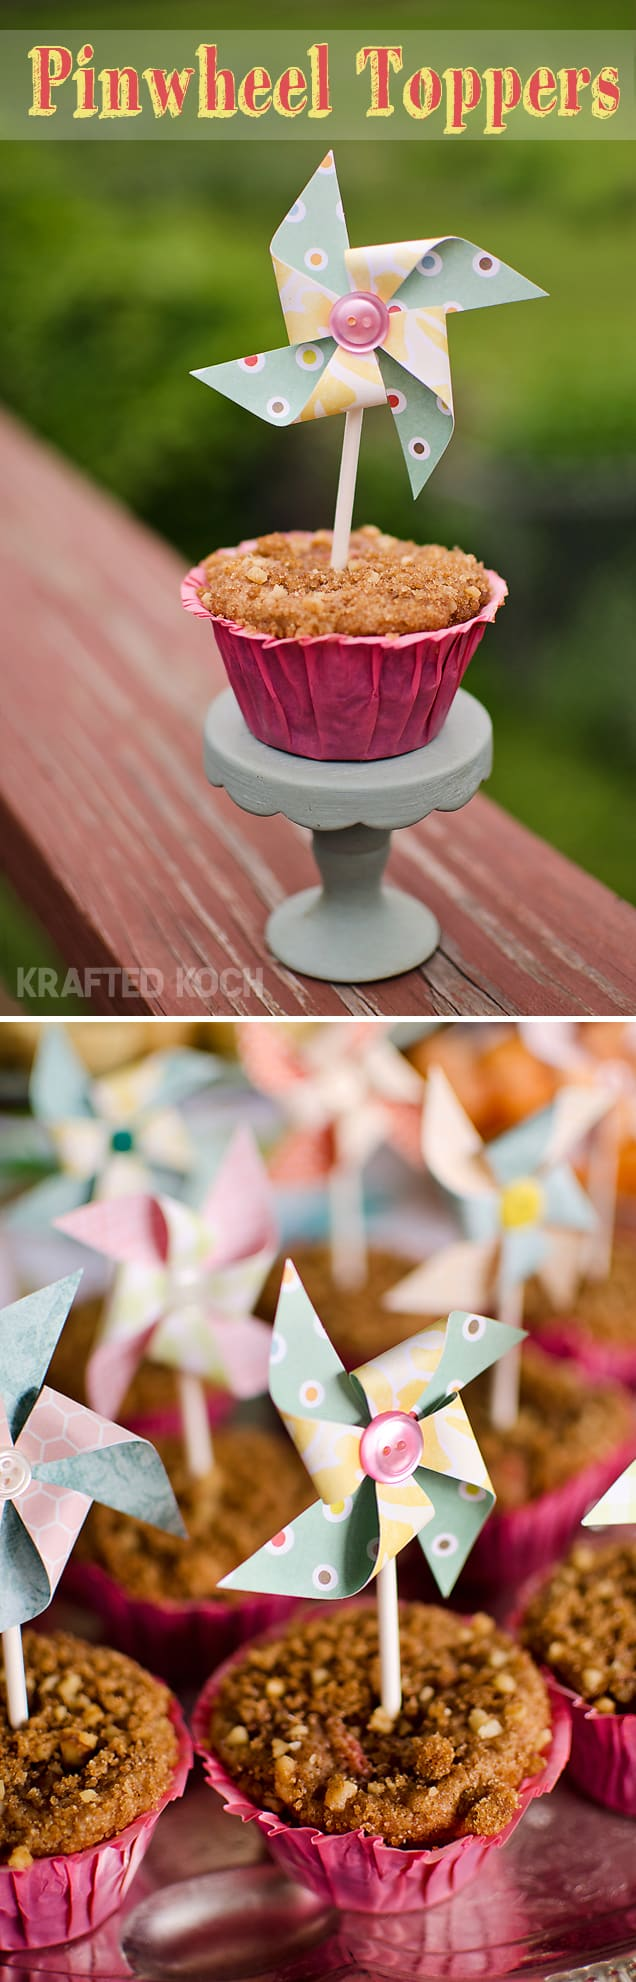 Pinwheel Cupcake or Muffin Toppers, Party Decor - Krafted Koch